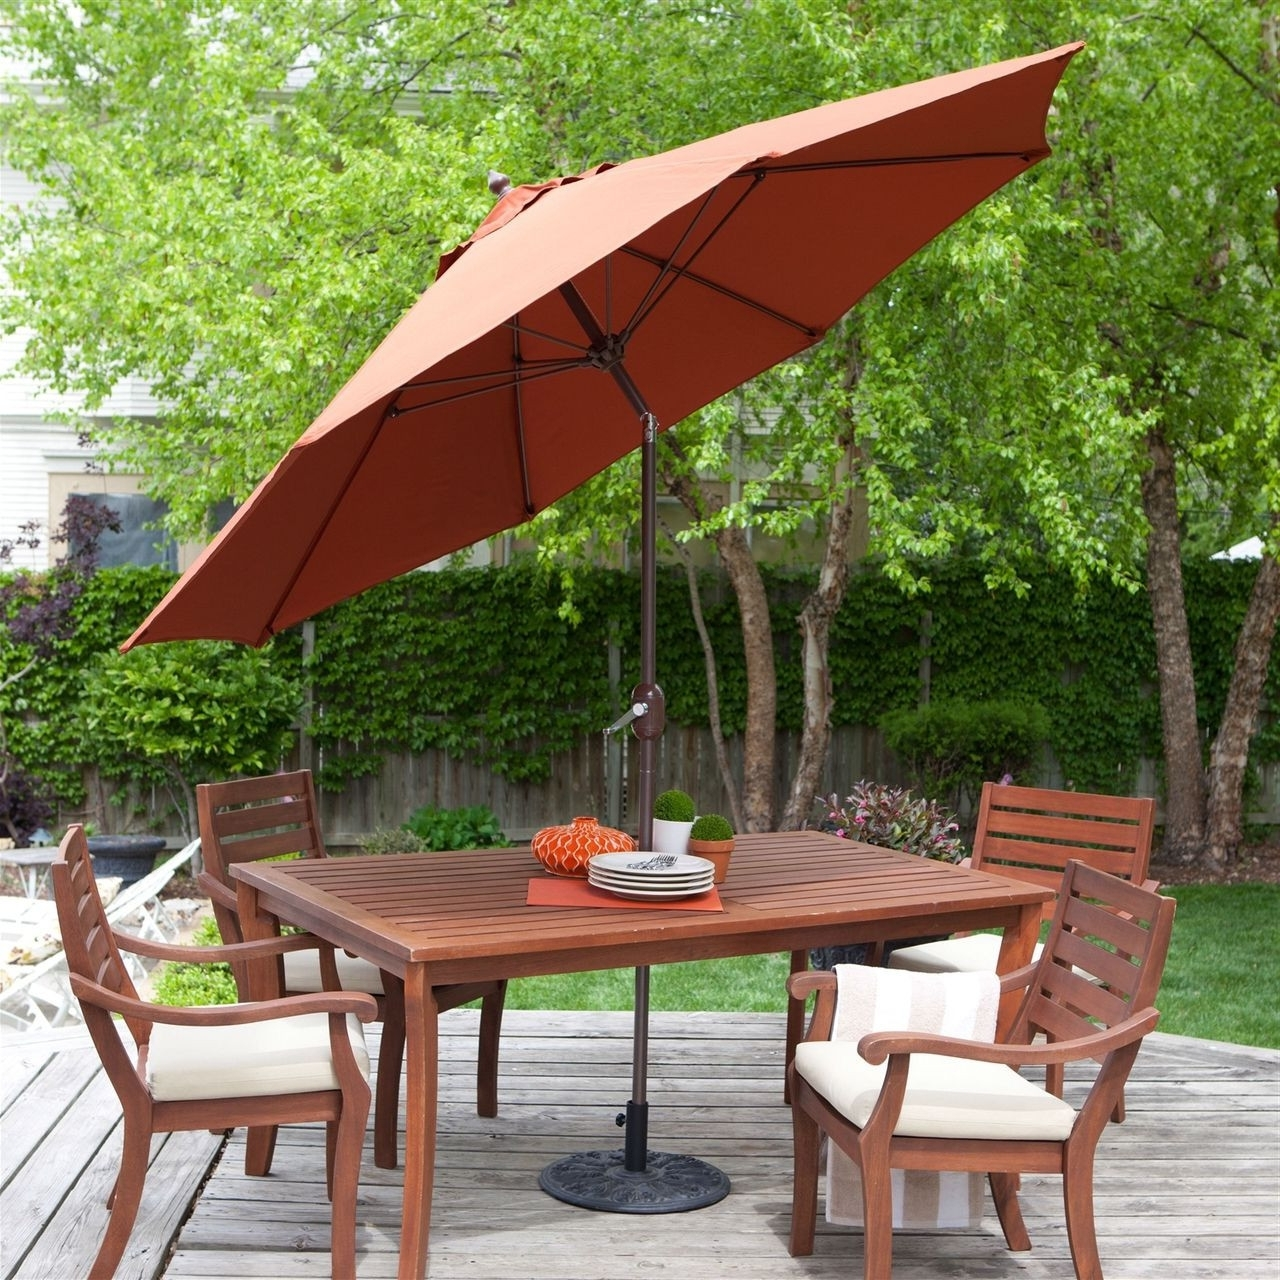 Most Popular How To Clean Patio Umbrella Inspirational 9 Ft Tilt Patio Umbrella Inside 9 Ft Patio Umbrellas (View 12 of 20)